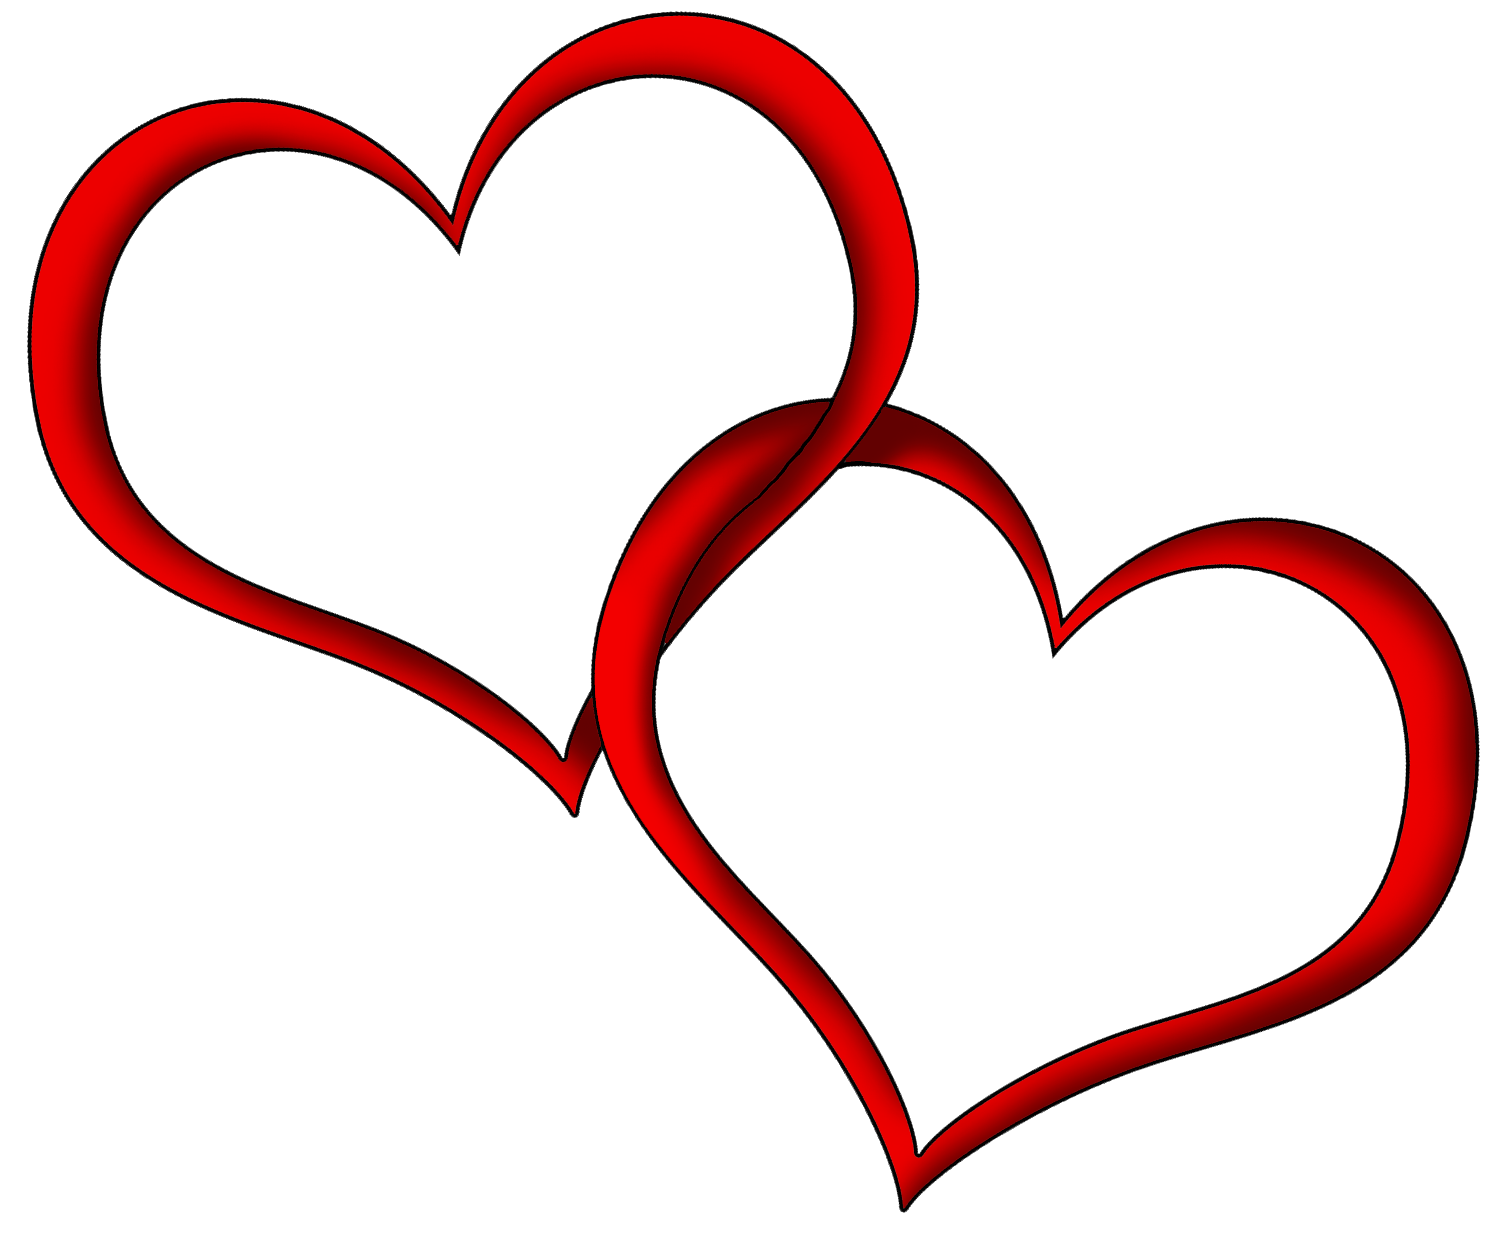 Hearts-heart-clipart.png